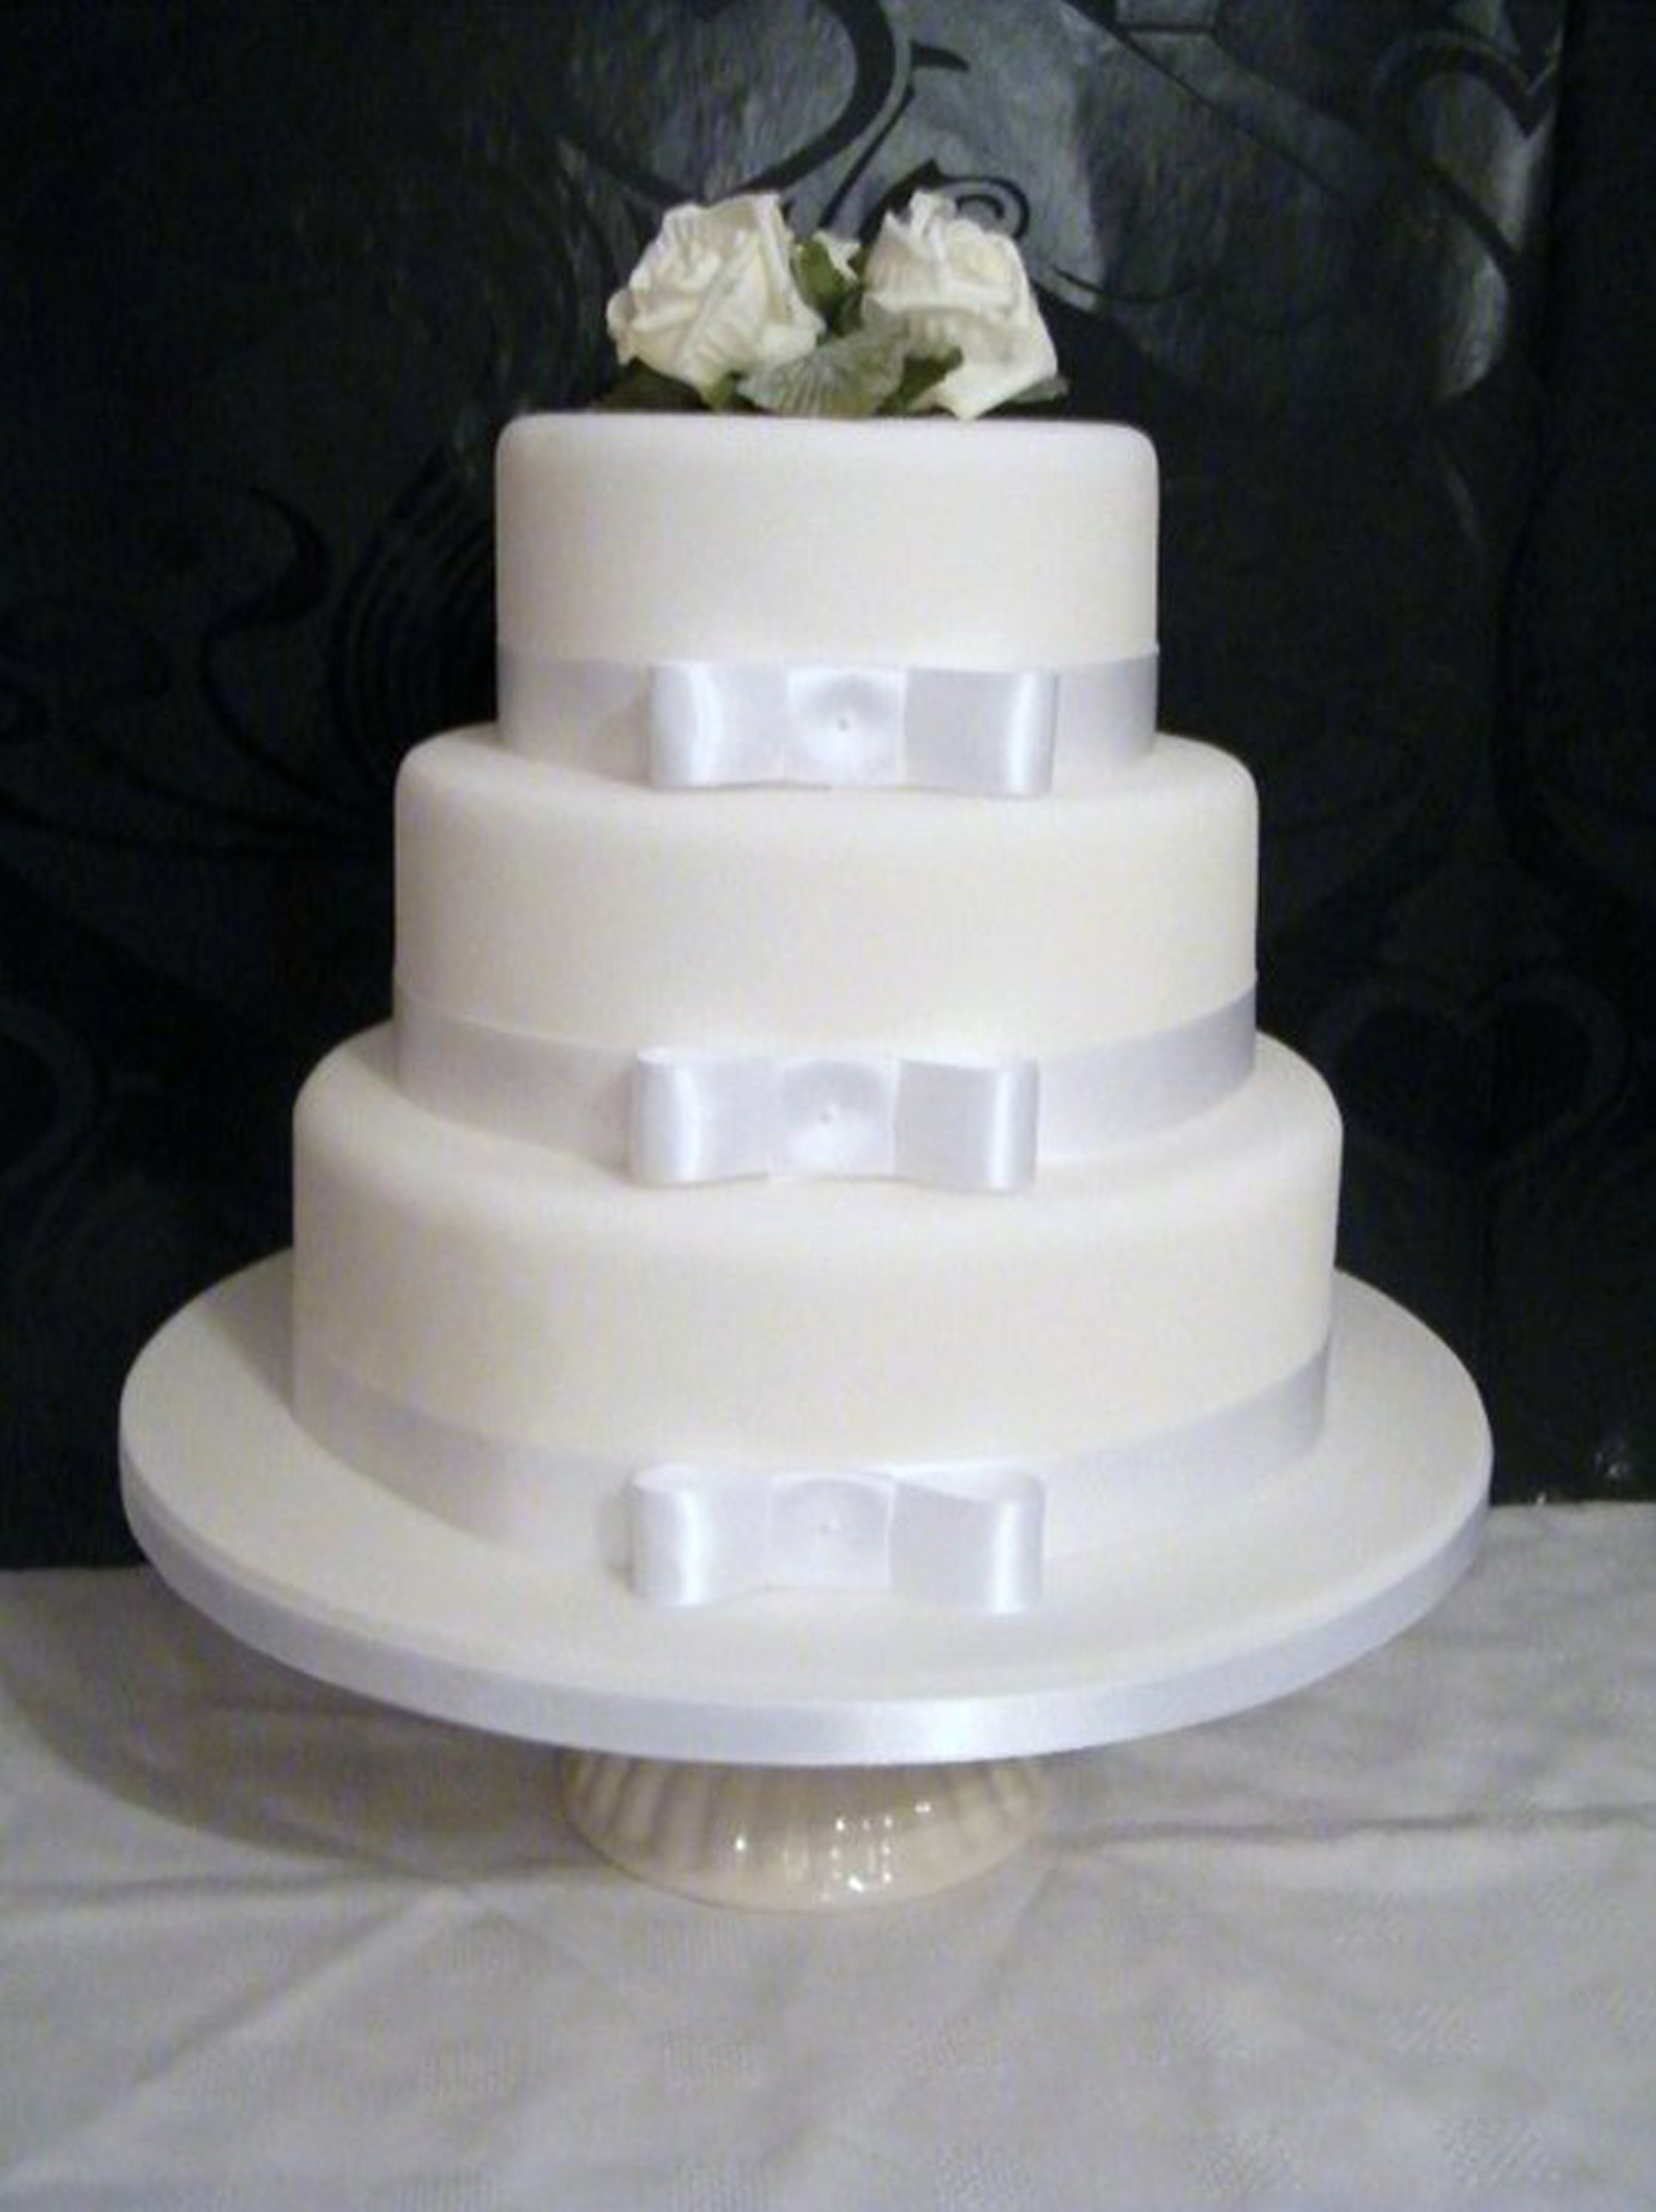 meaning behind feeding wedding cake 5 top budget savvy tips to consider when choosing your 17236